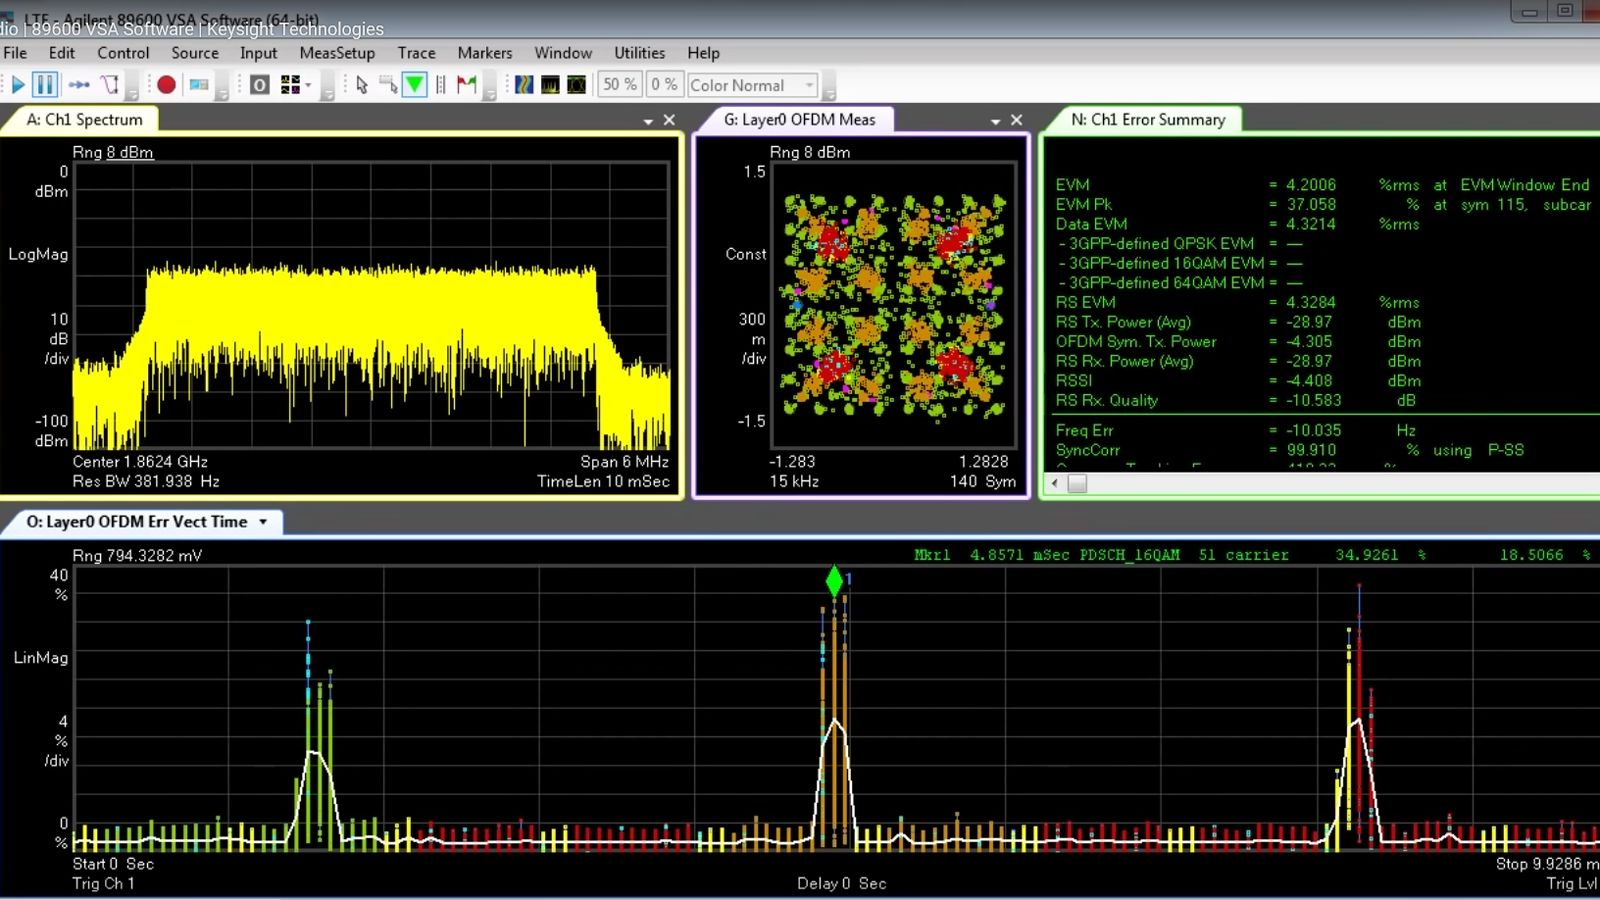 Troubleshooting Interactions Multi-Standard Radio | 89600 VSA Software | Keysight Technologies